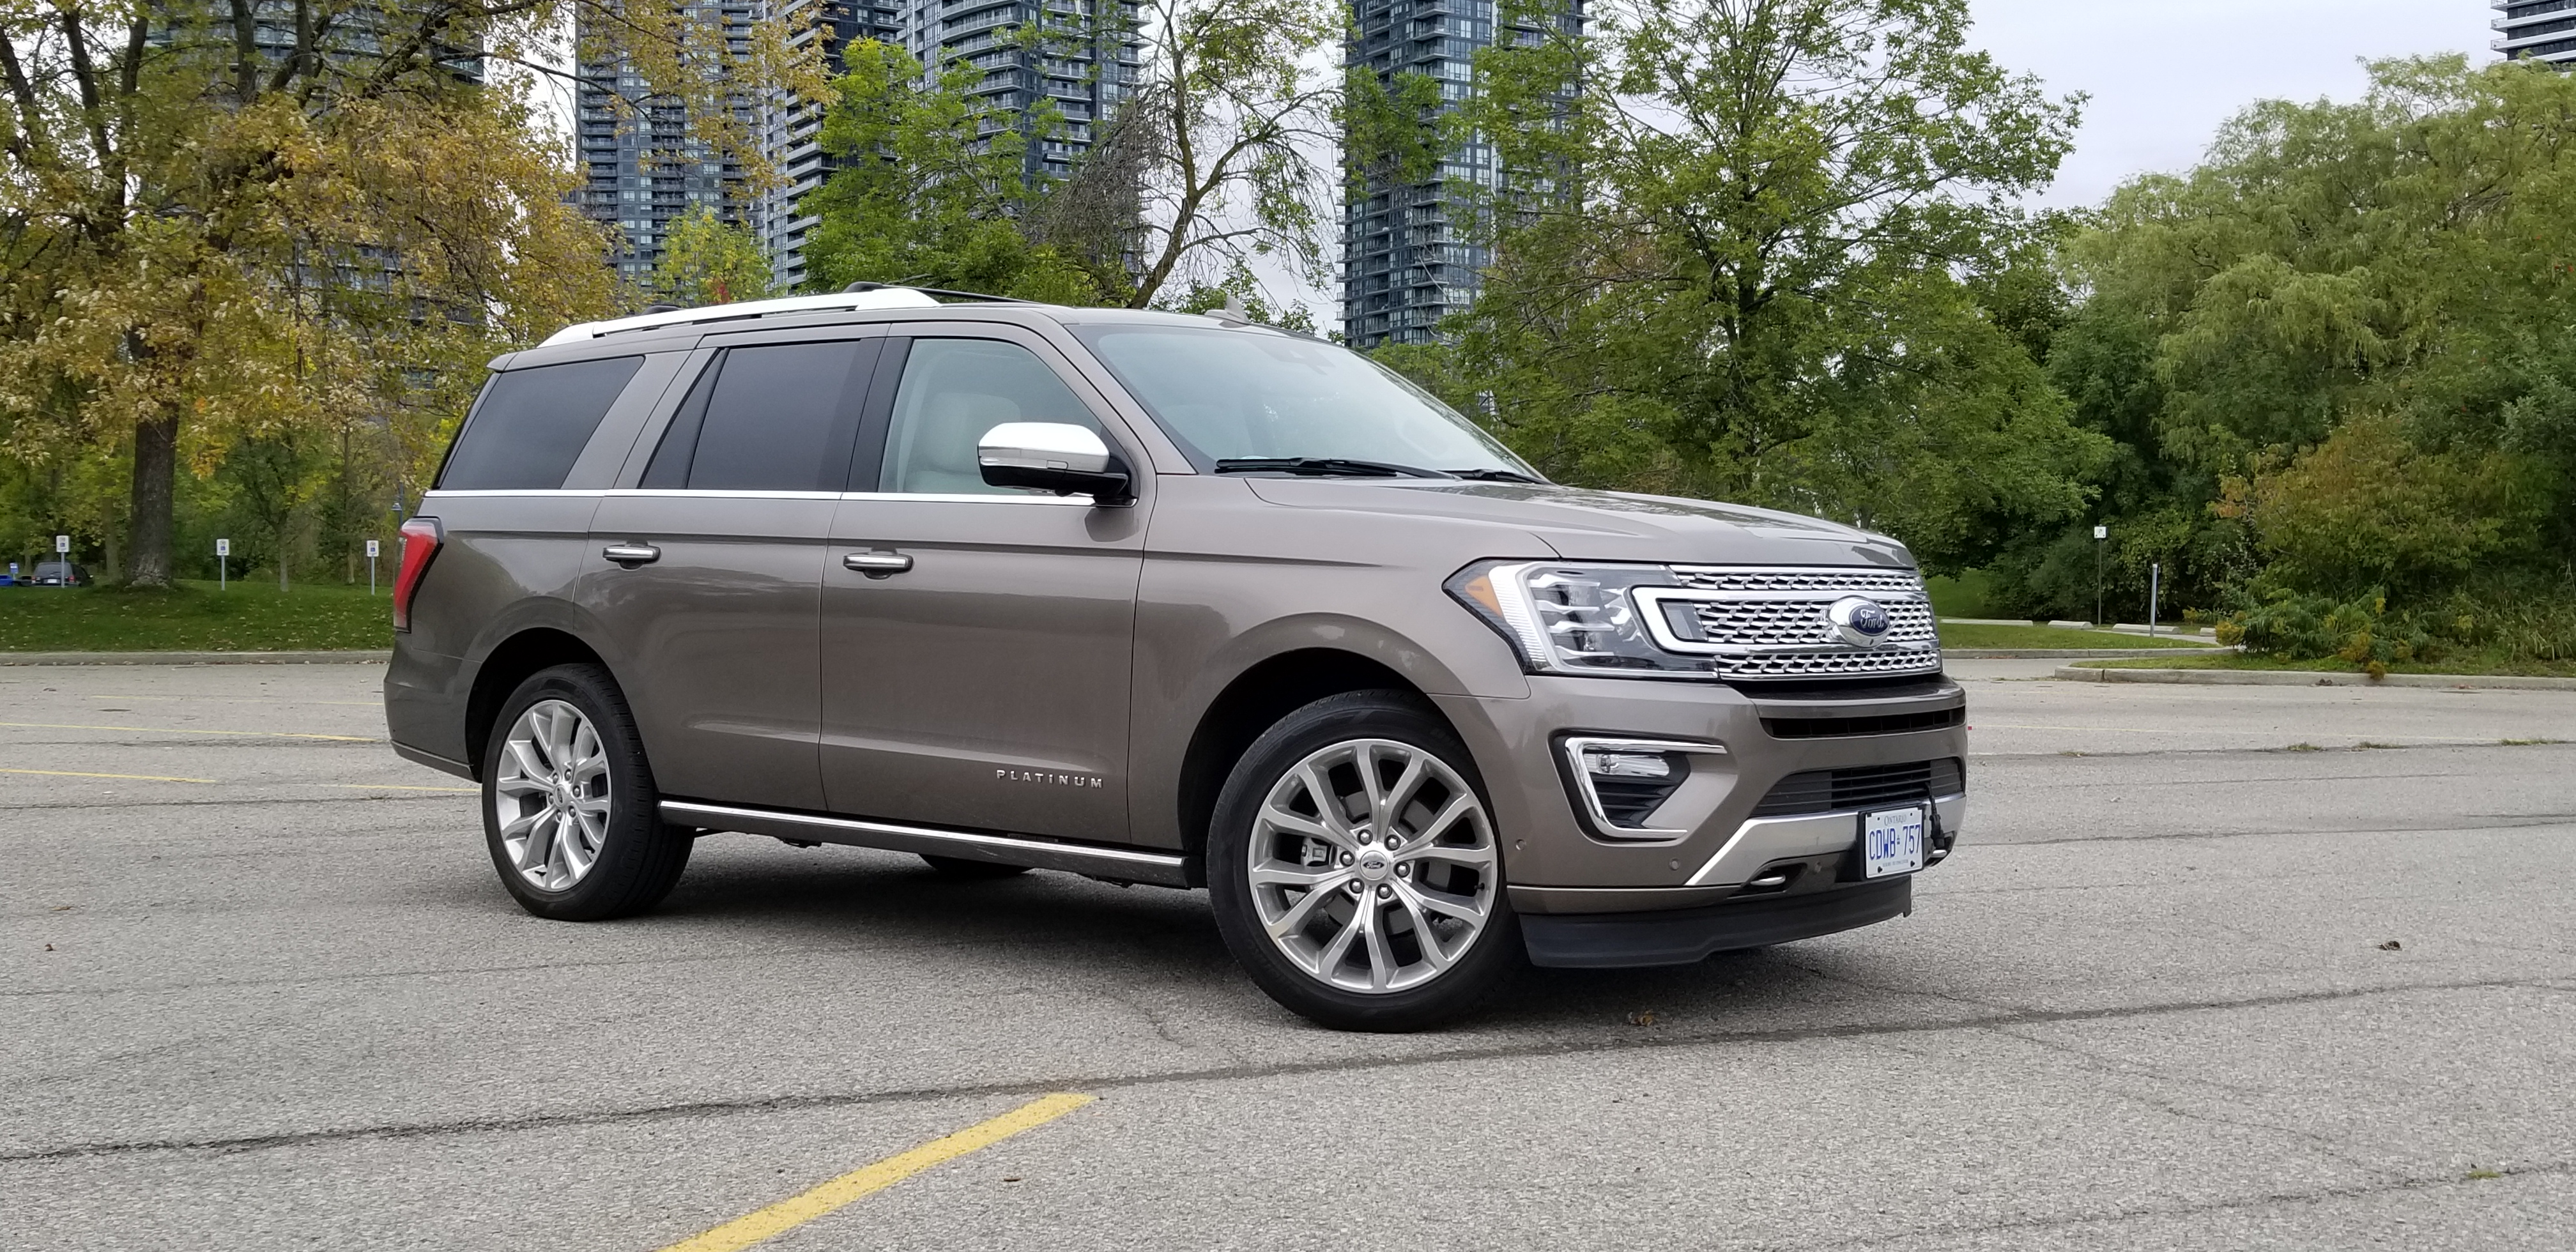 Large SUV 2019 Canadian Car of the Year